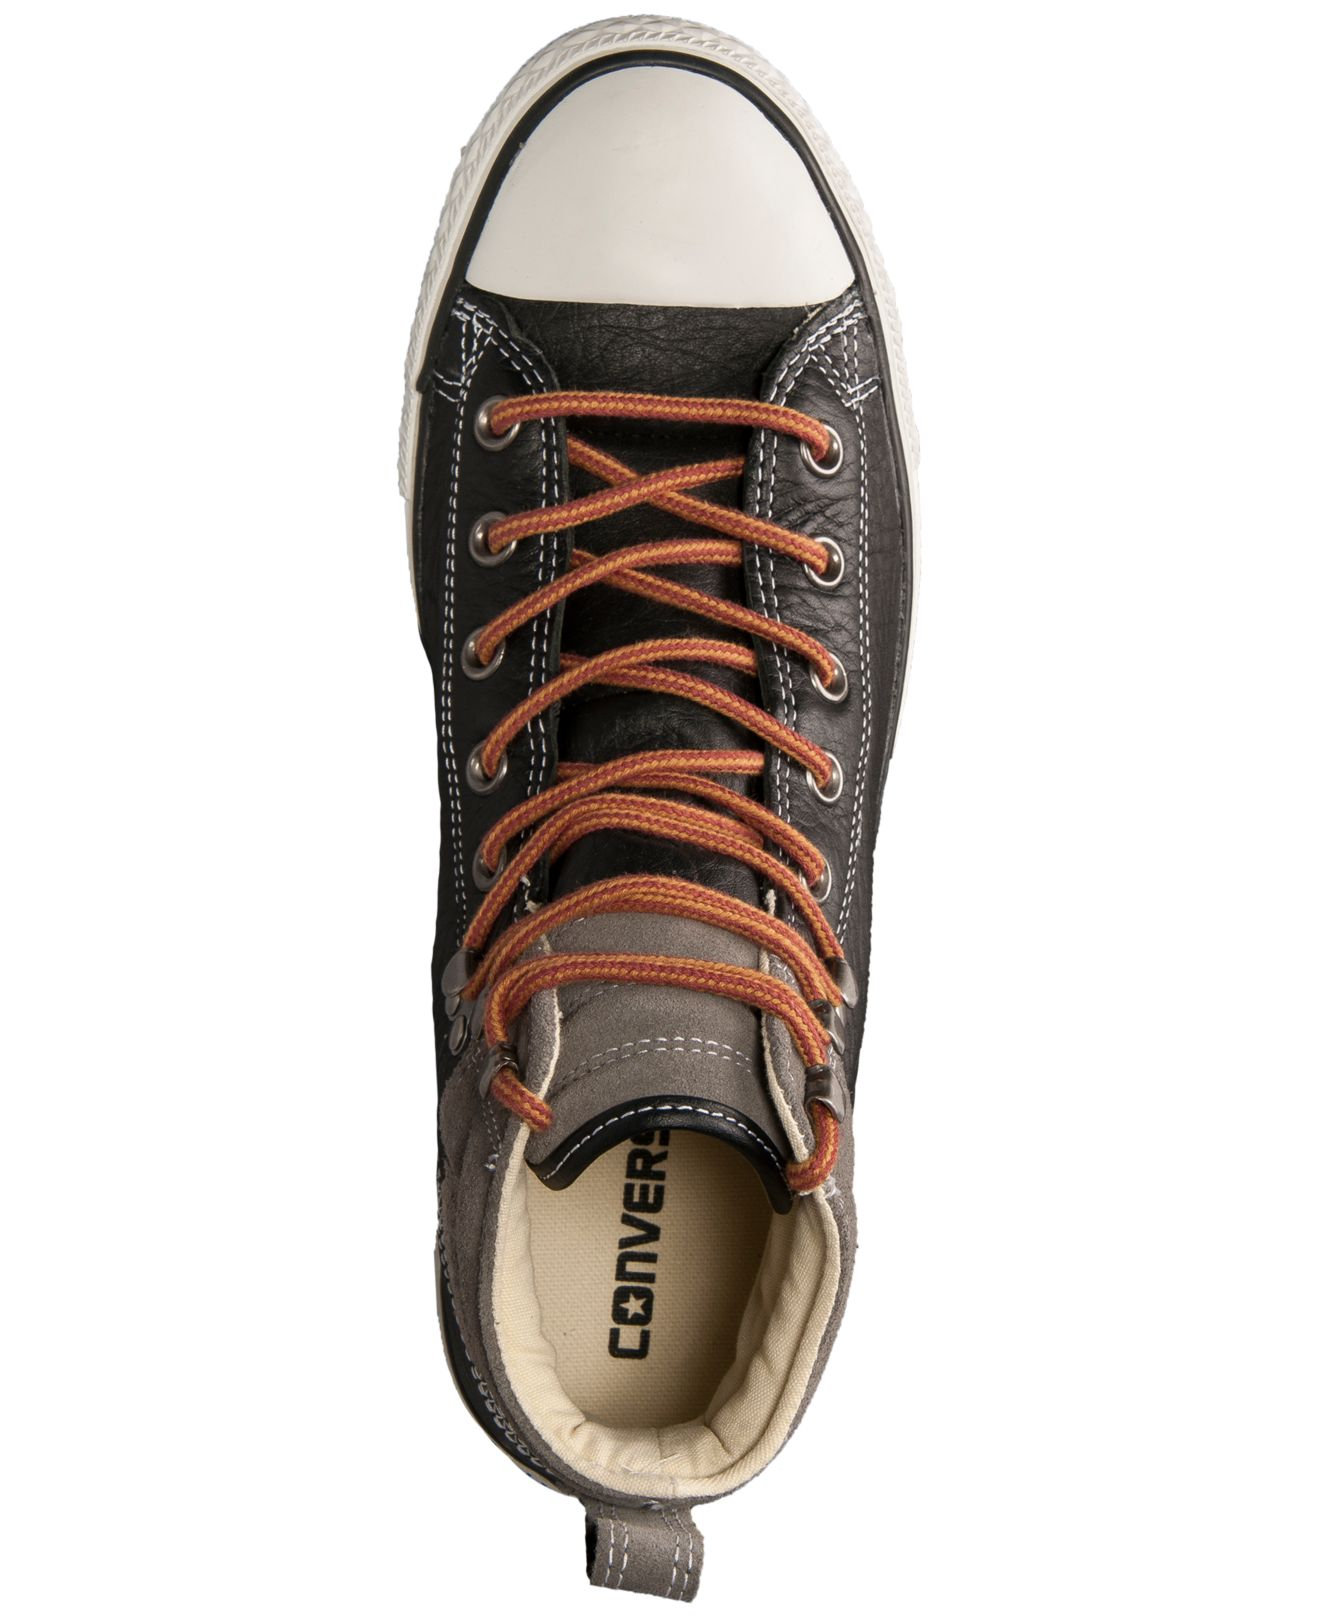 Lyst - Converse Men s Chuck Taylor All Star Hiker 2 Sneakers From Finish  Line in Black for Men c052a792b